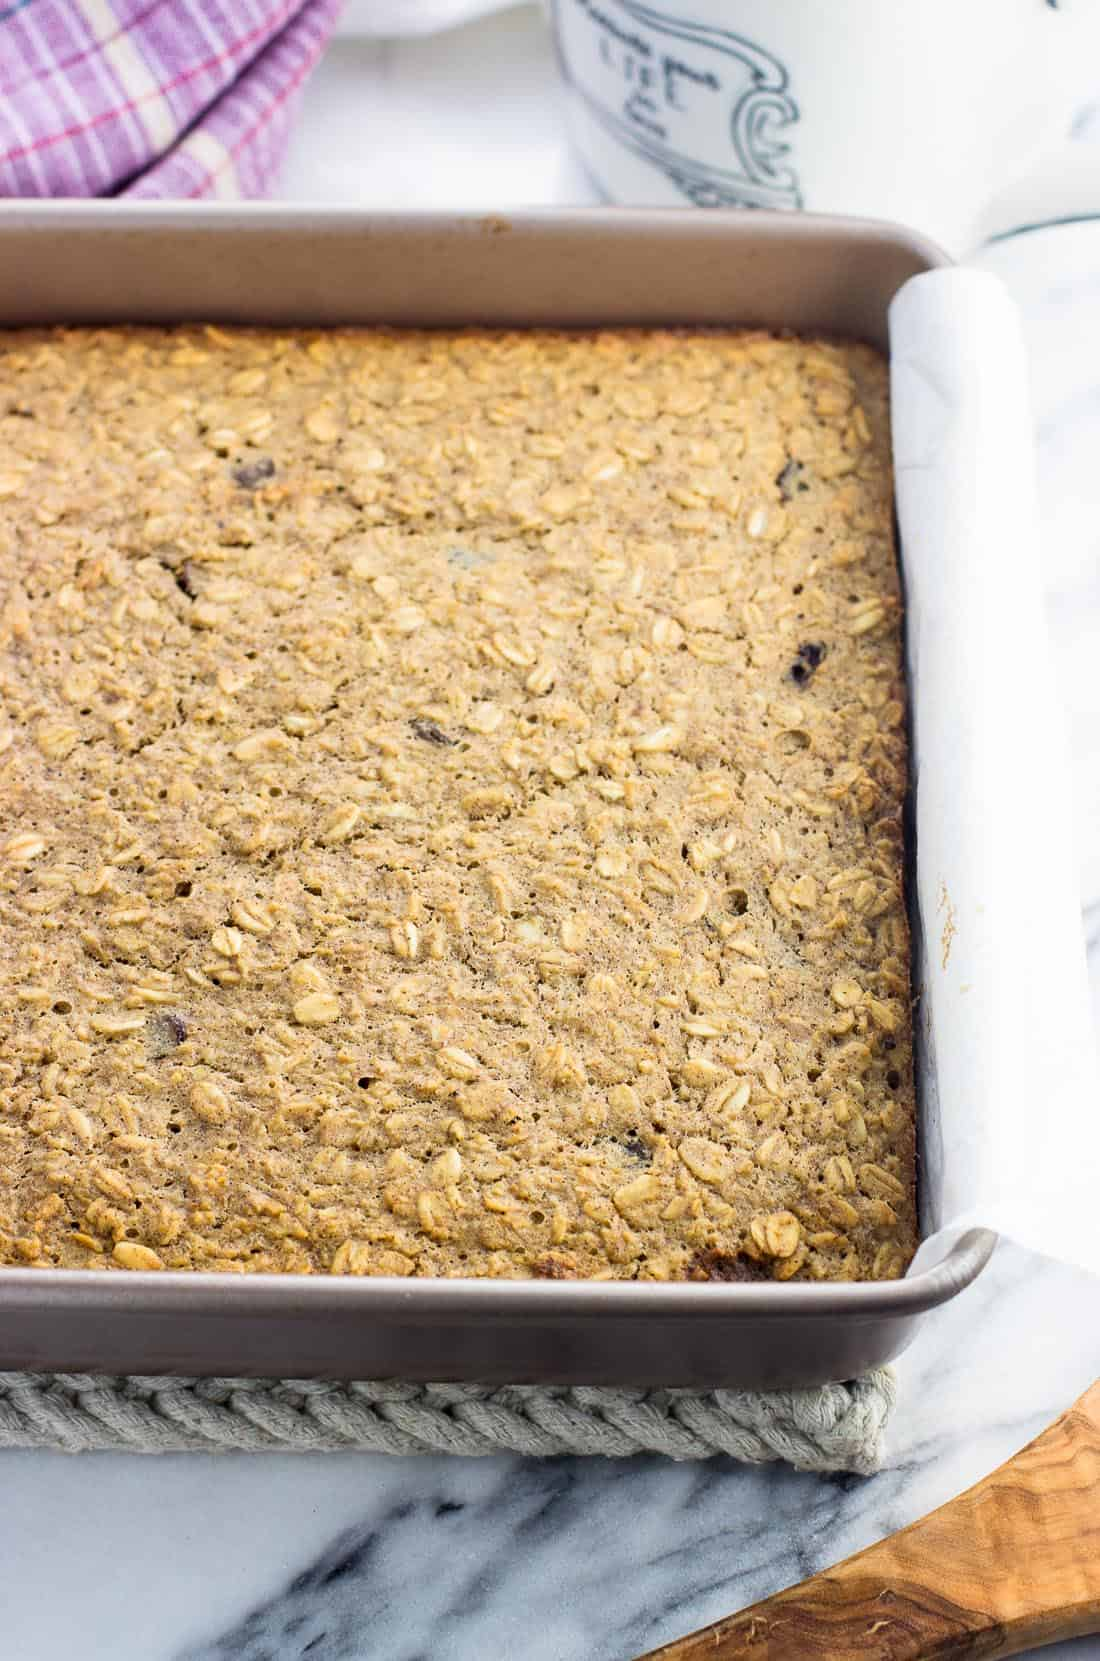 A pan of peanut butter baked oatmeal before being sliced into squares